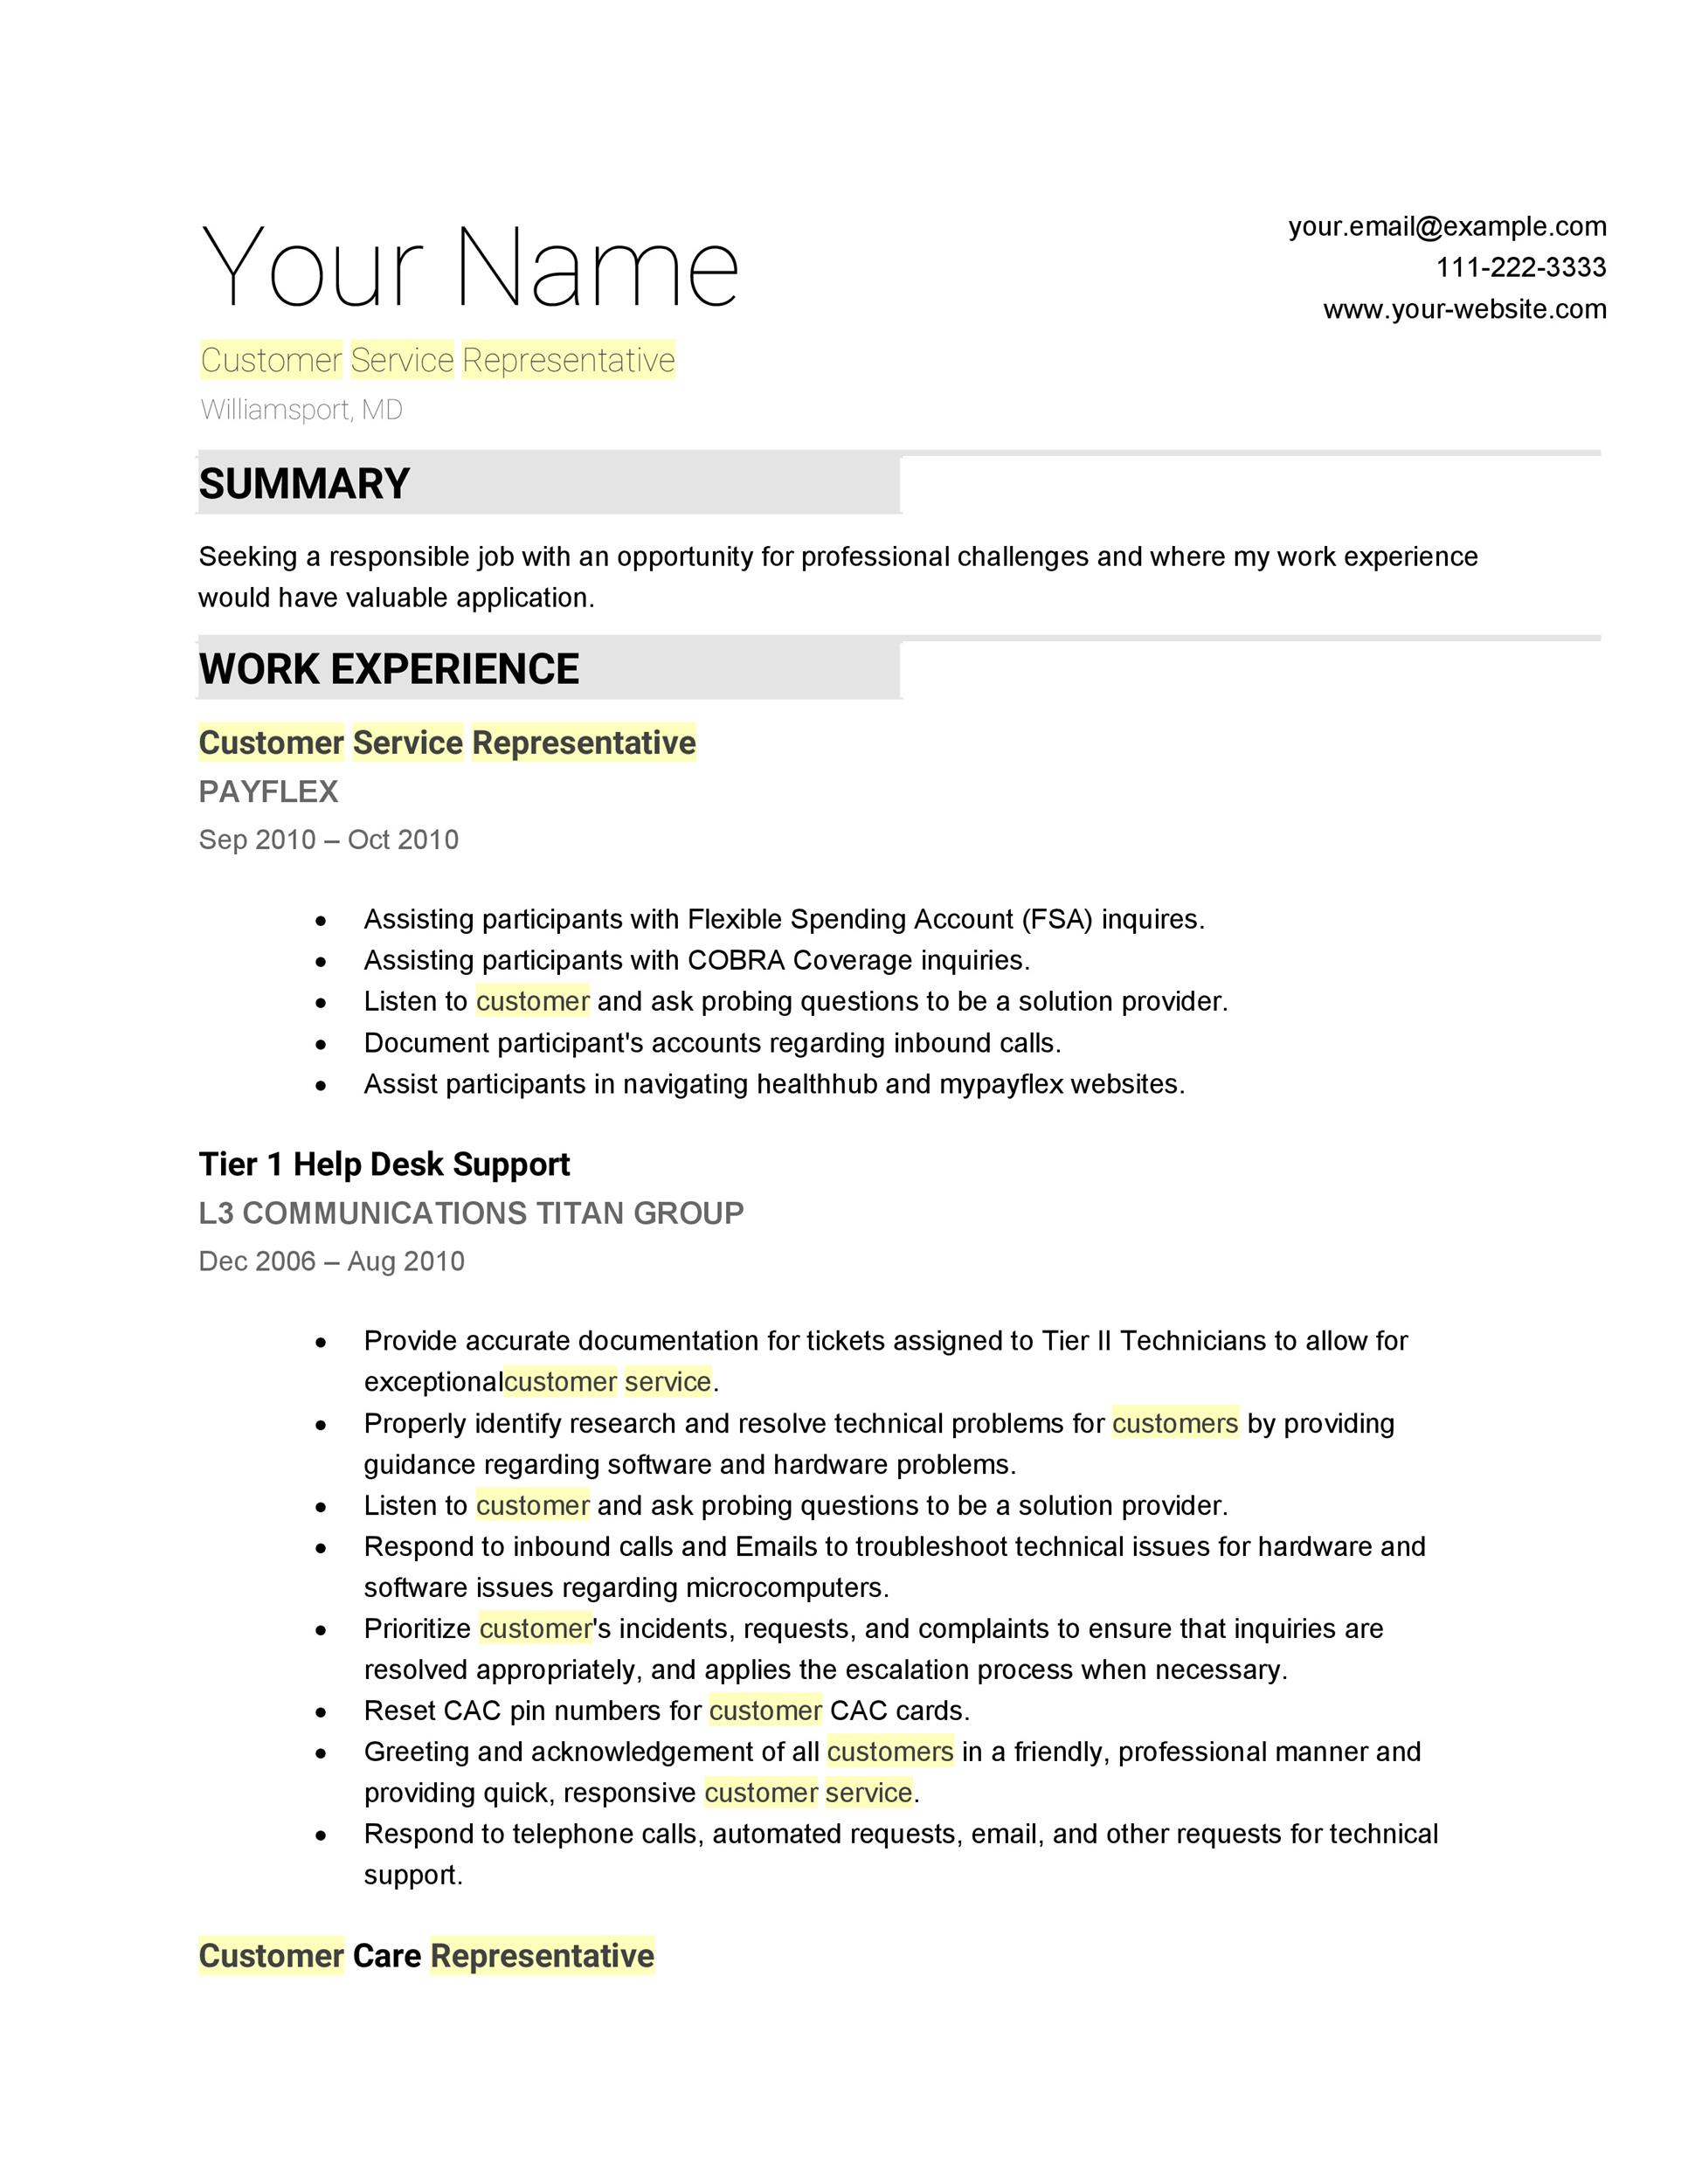 Customer Service Resume Templates  Photo Resume Template